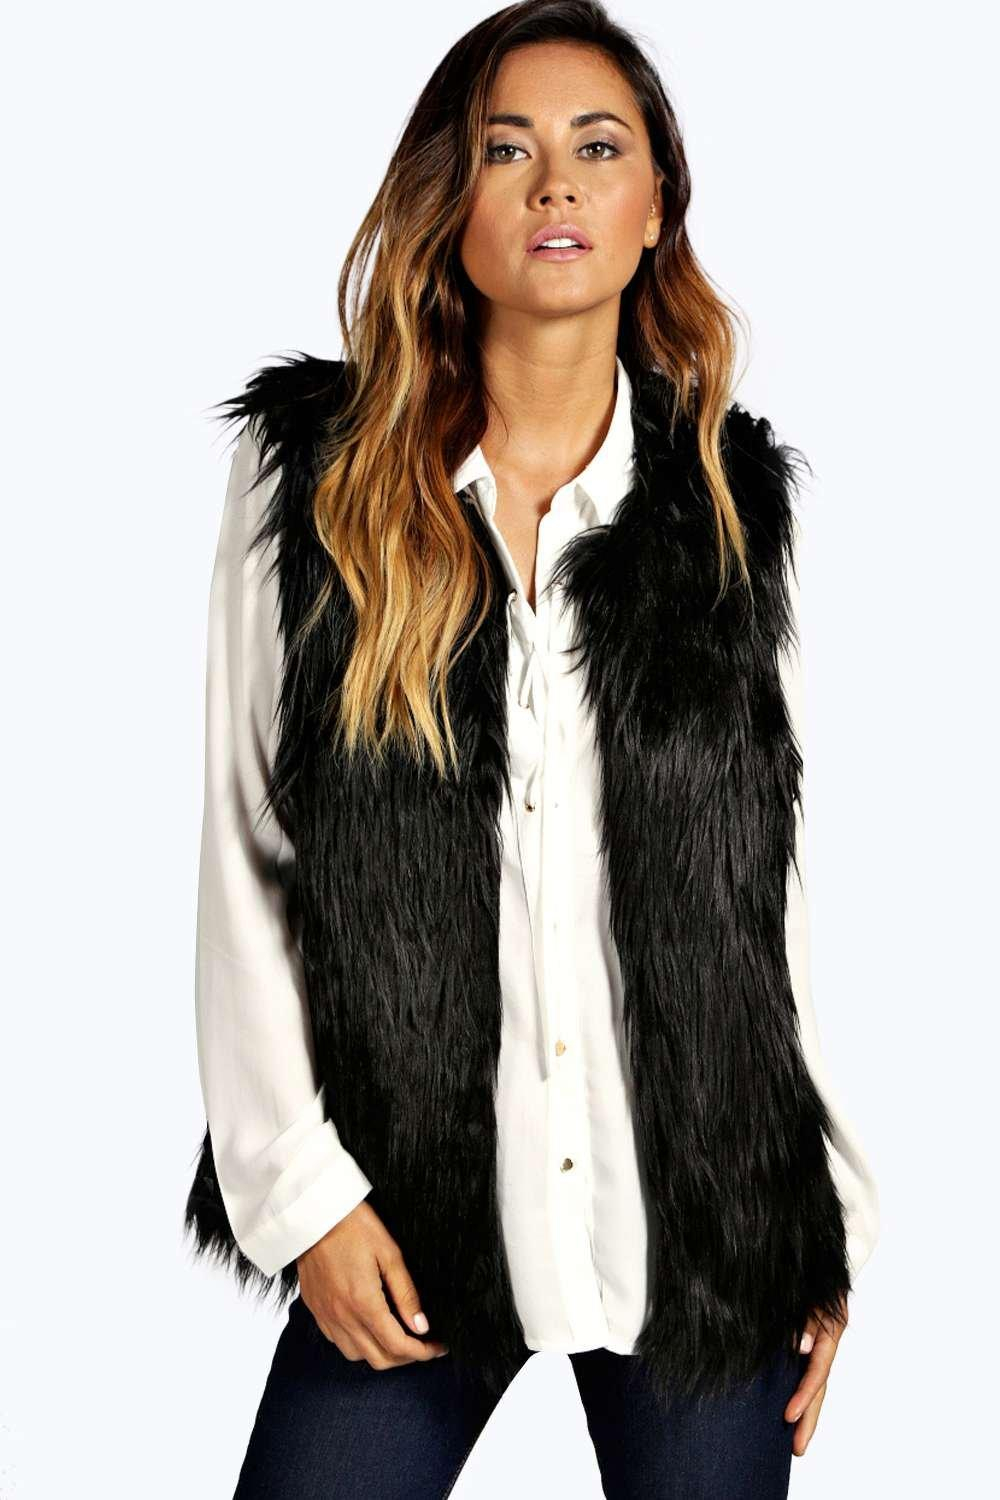 In a luxe neutral colourway, the plush Fay gilet in faux-fur will pair seamlessly with any item in your winter wardrobe. Featuring a sleeveless silhouette and soft collar, it looks instantly elegant when layered over a tailored shirt or paired with on-trend statement knitwearand leather trousers.. Hook-button front.